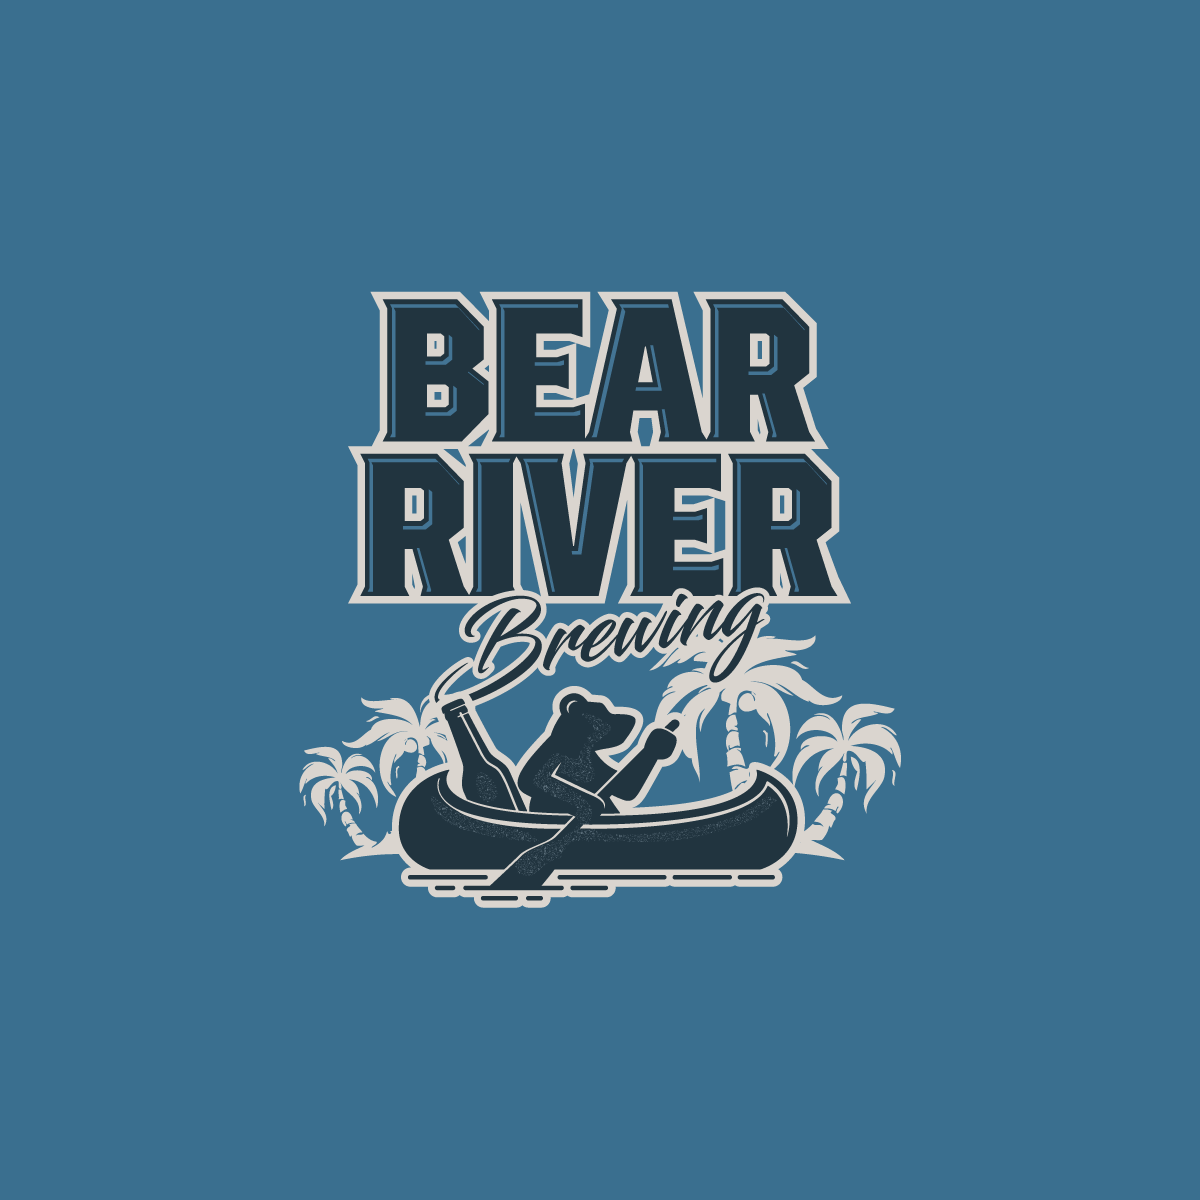 Bear River Brewing Logo Design 2